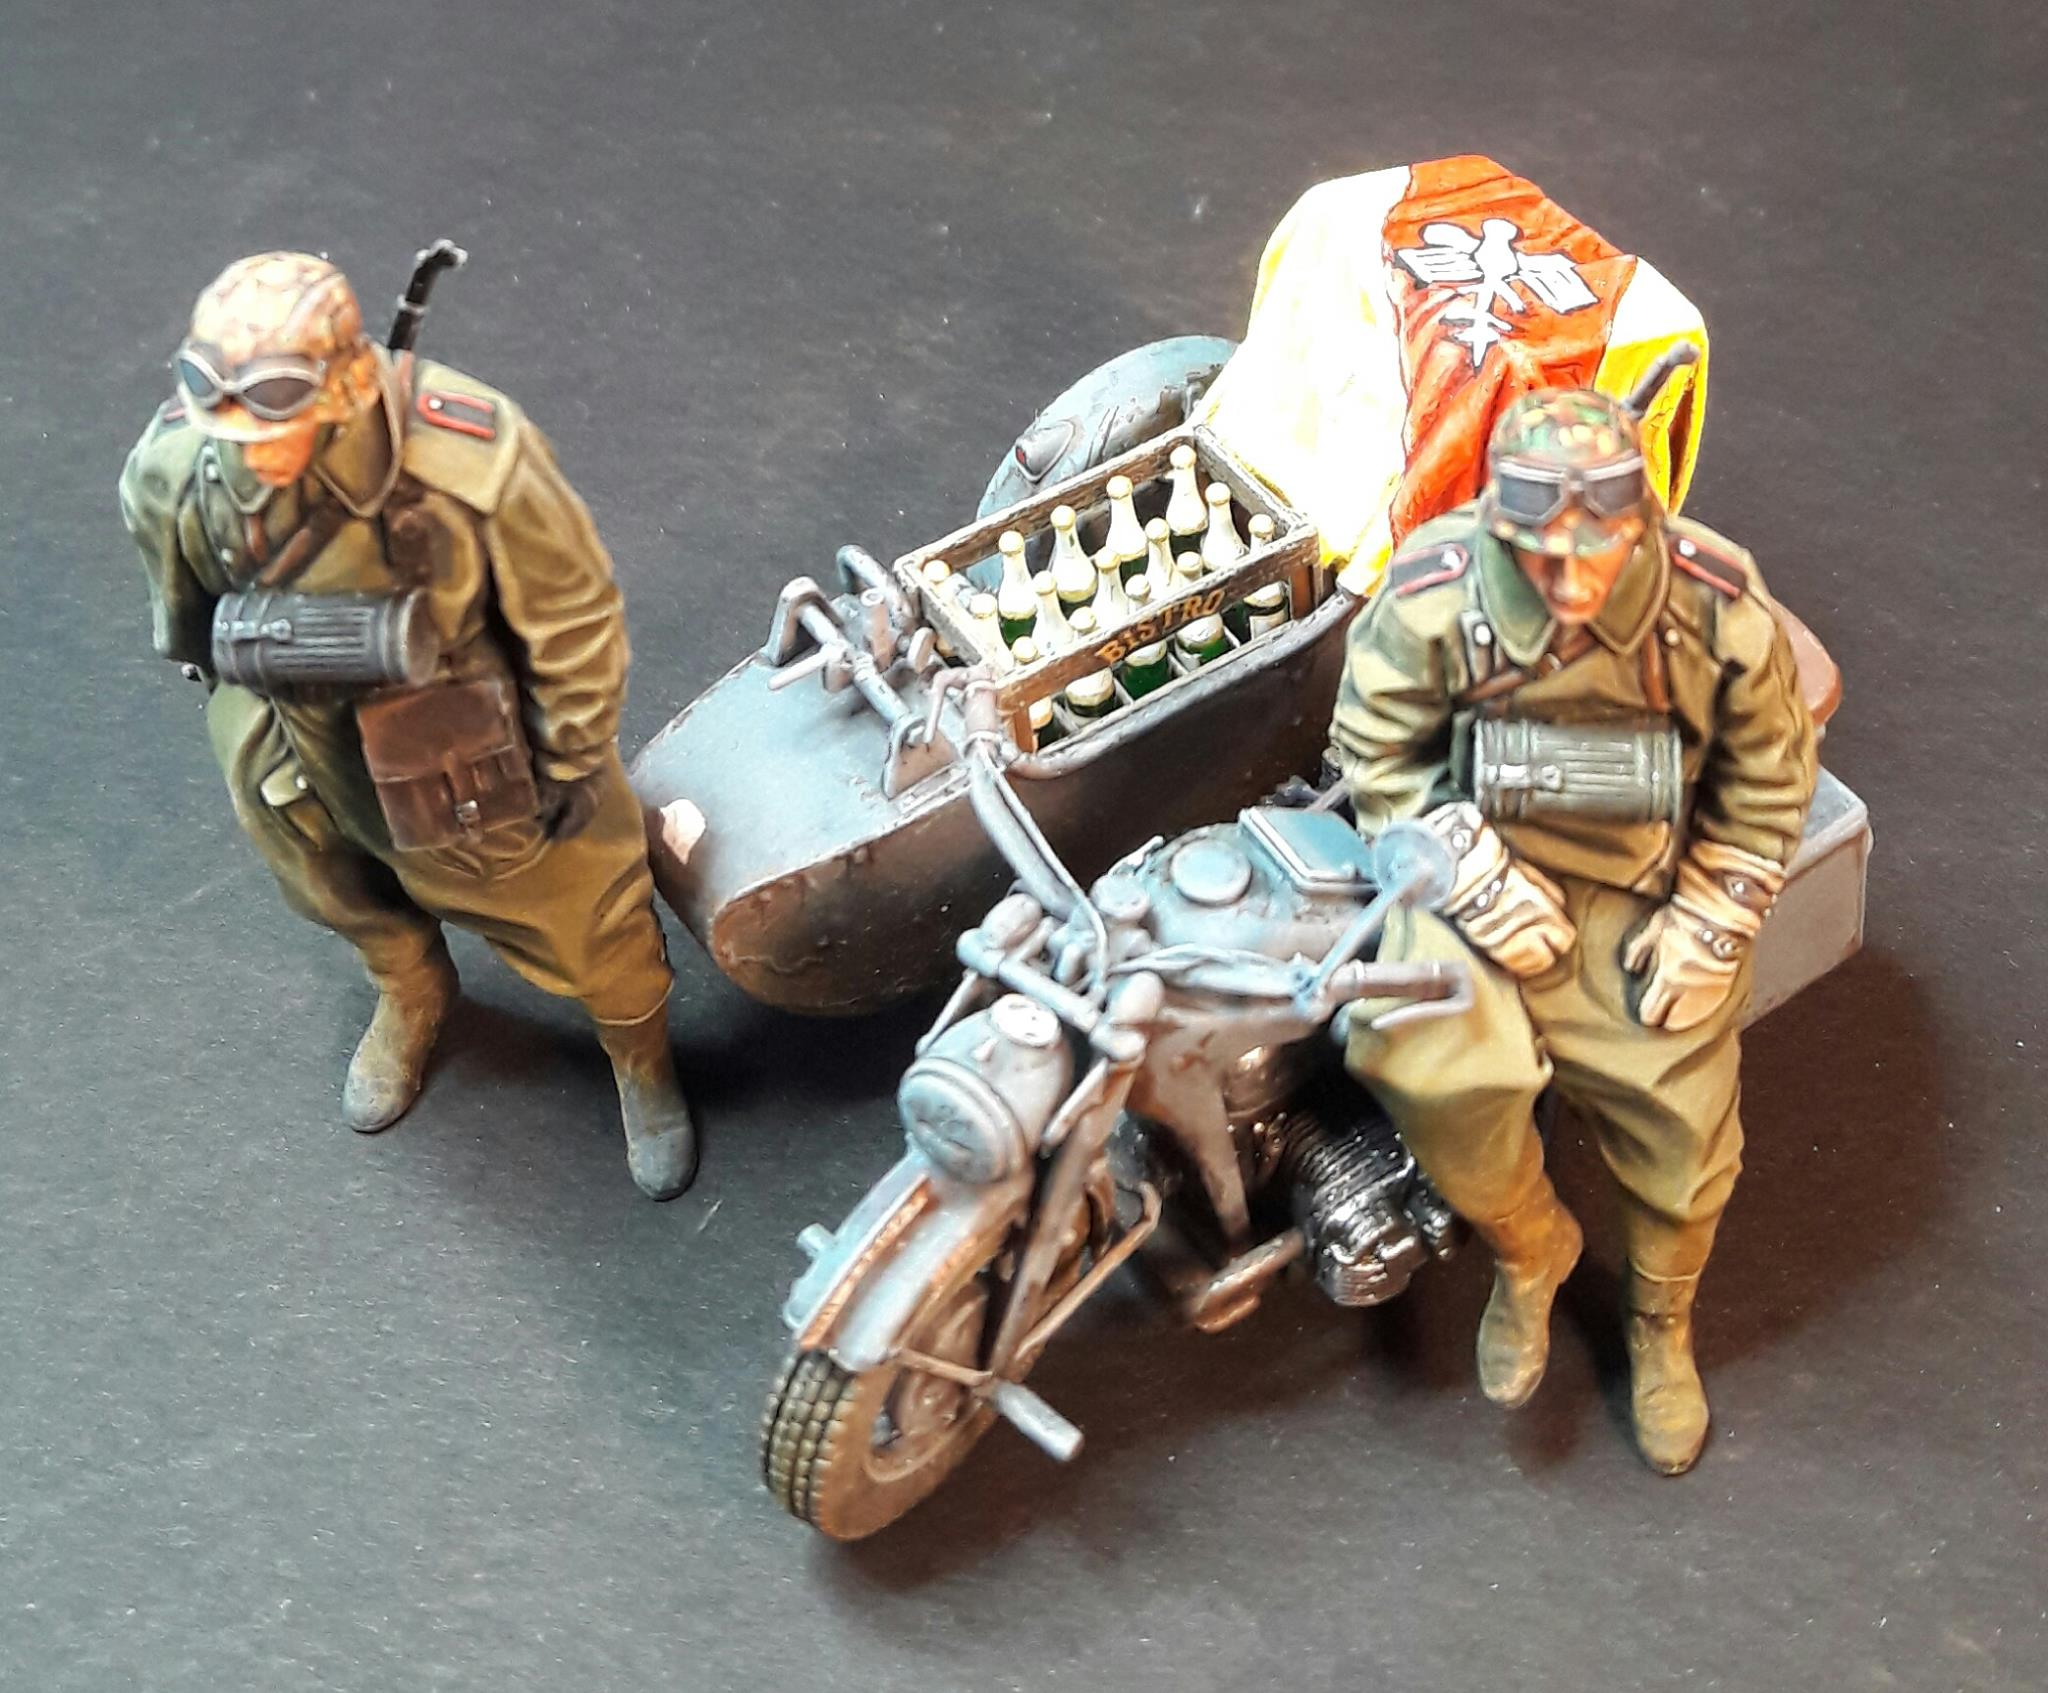 Zündapp KS750 - Sidecar - Great Wall Hobby + figurines Alpine - 1/35 - Page 5 5118772004905210211786805840143255920168o